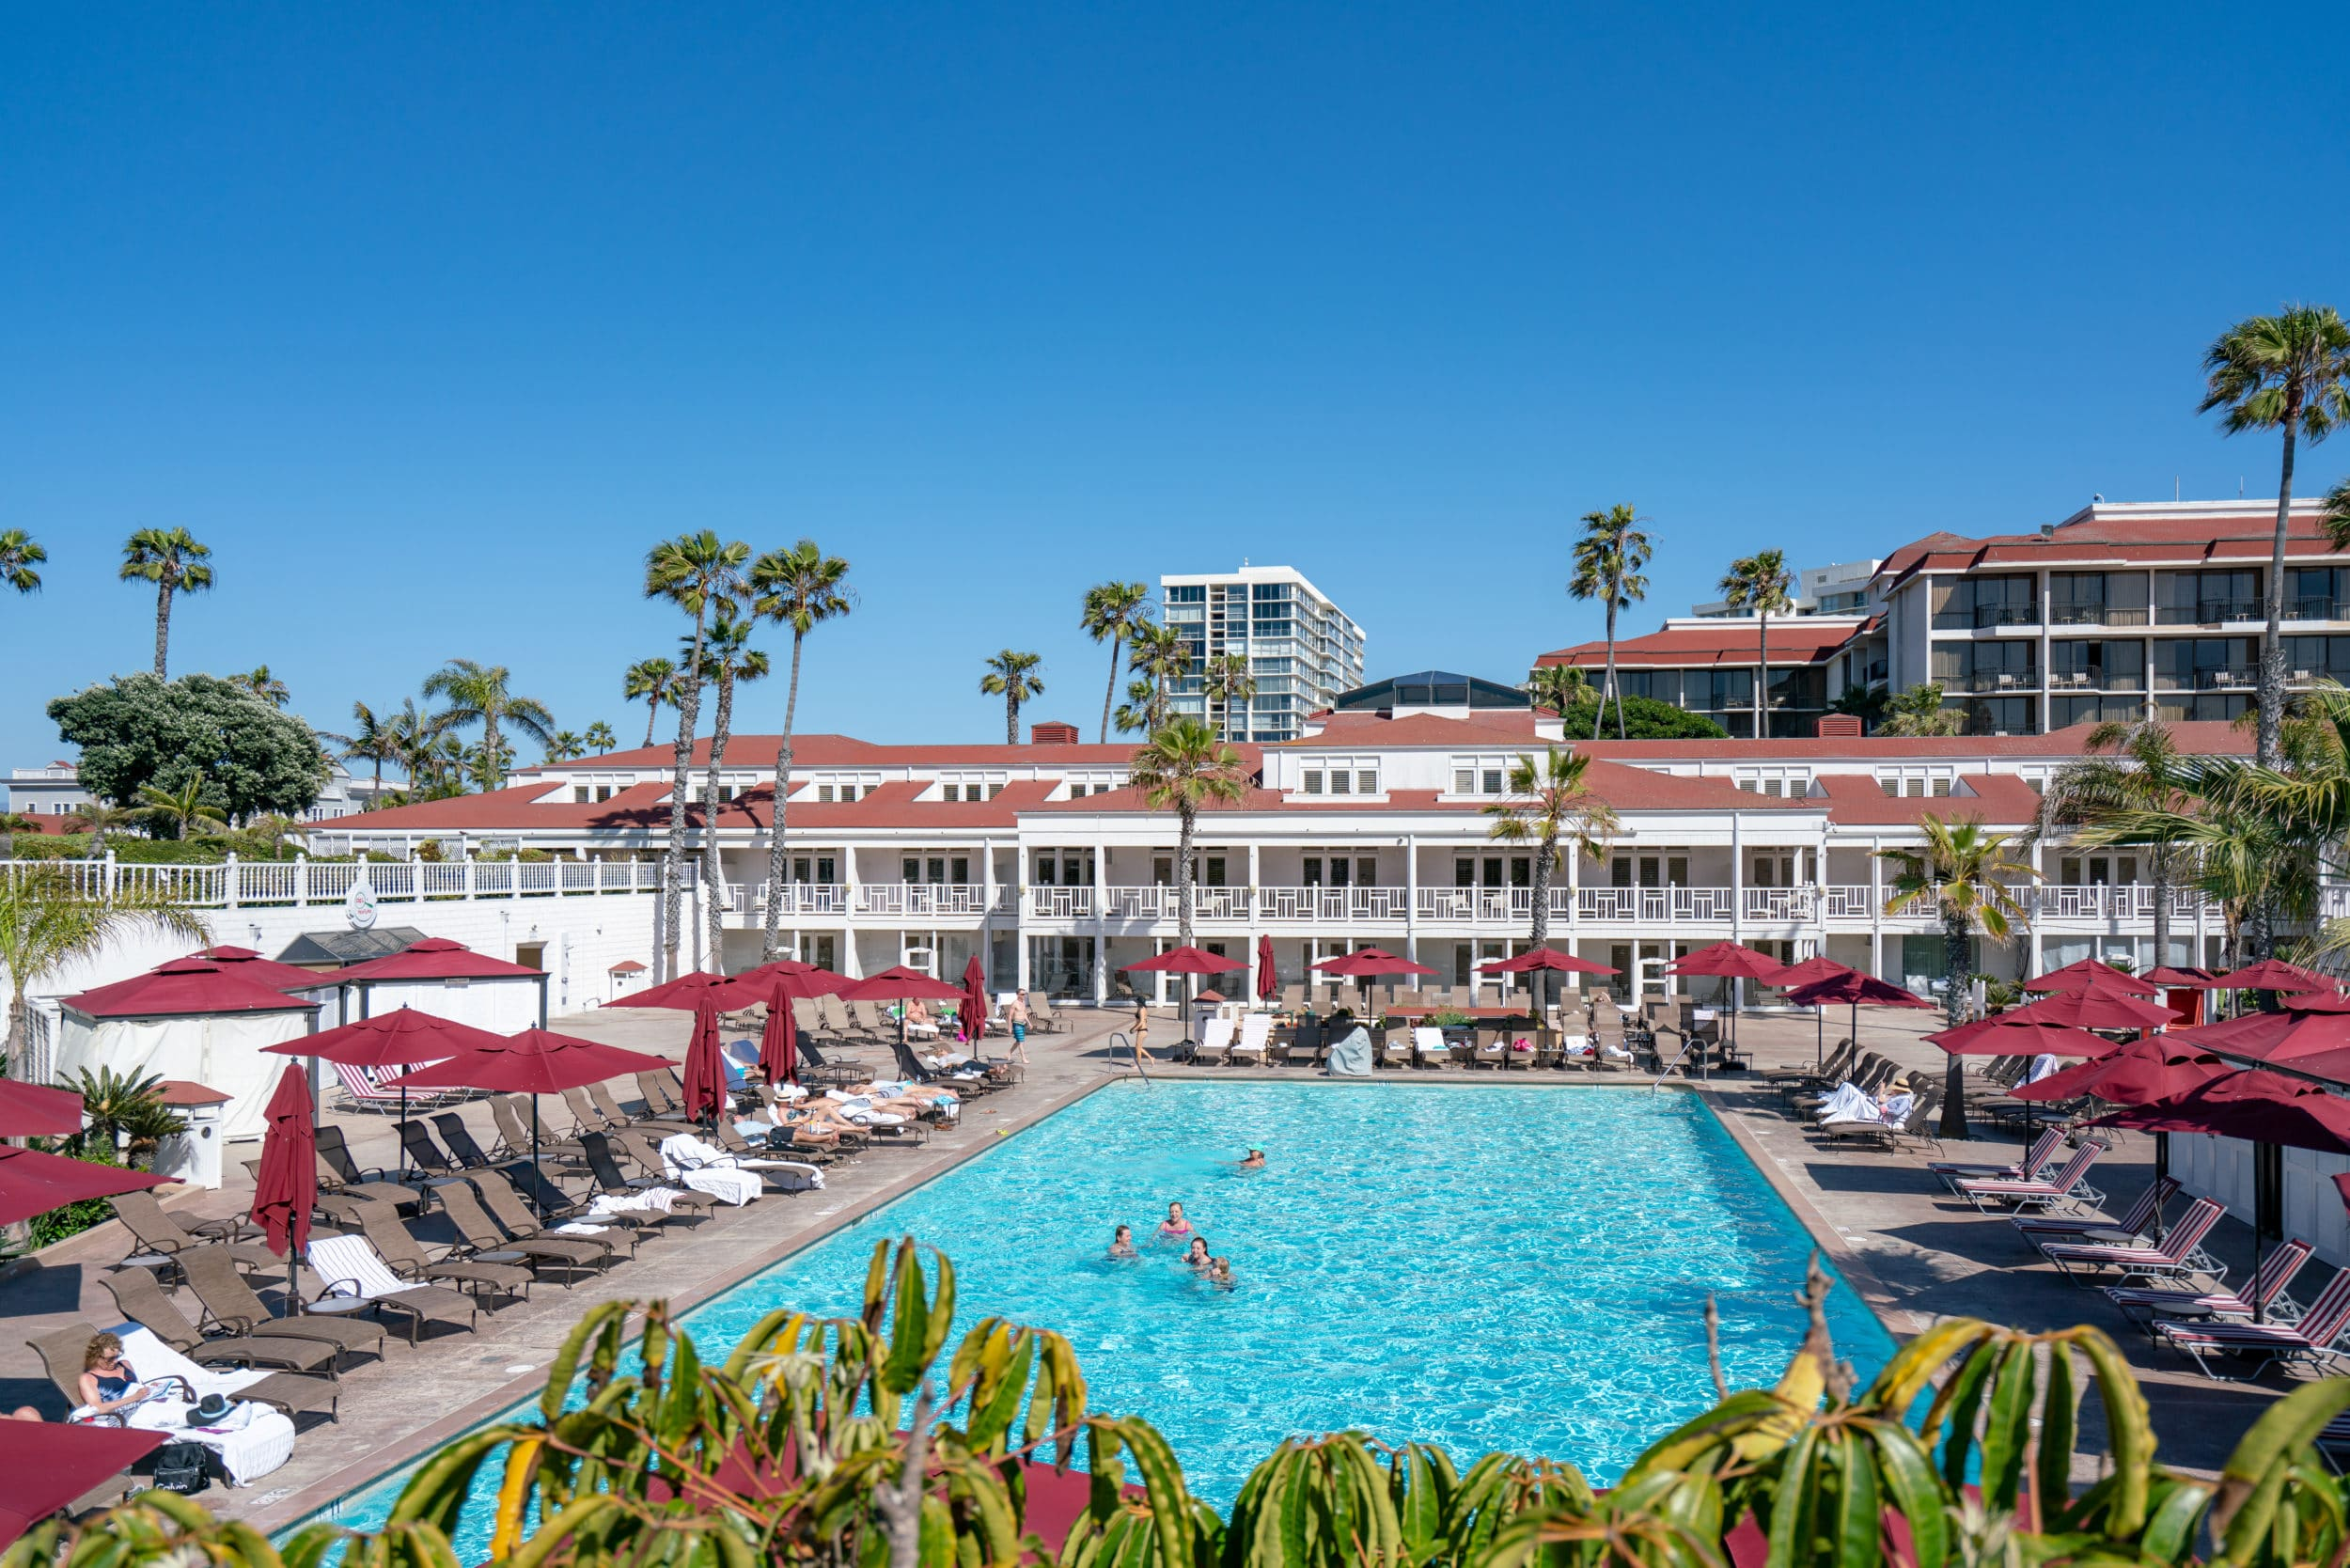 507456fc25f9b6 Hotel Del Coronado  A Very Detailed Guide - La Jolla Mom